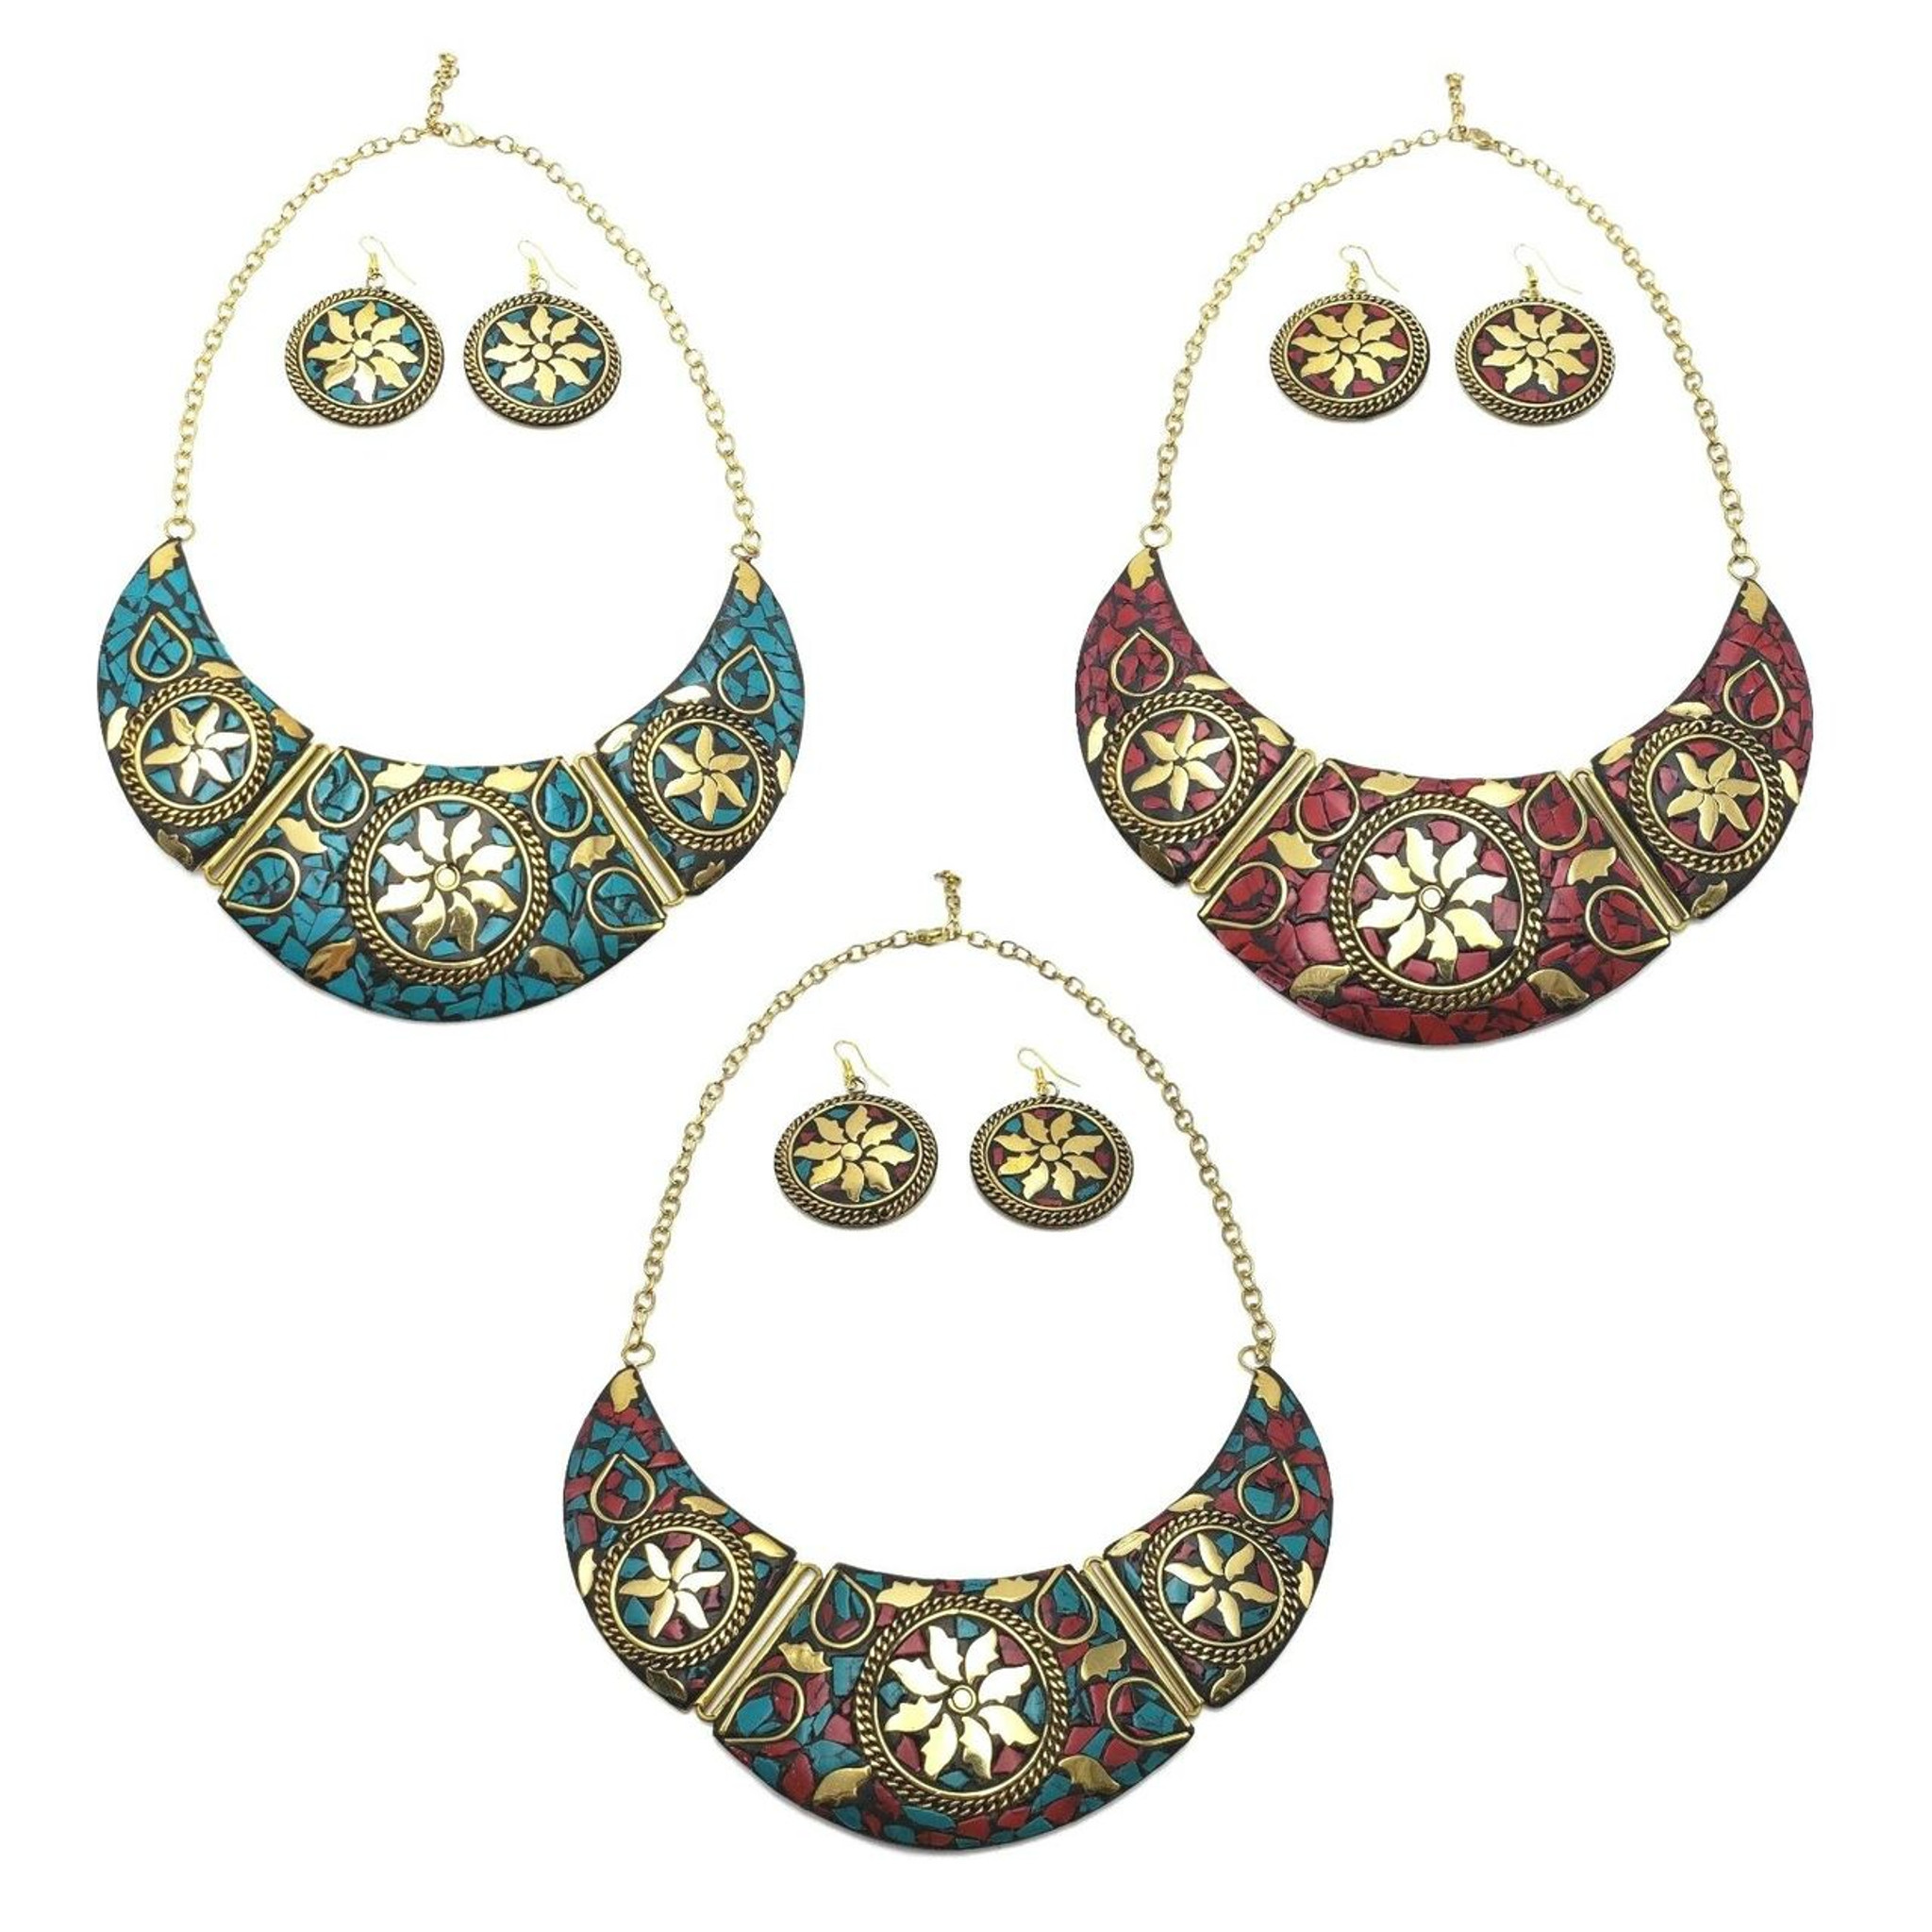 Bajalia Jewelry Tibetan Solid Brass Bib Collar Coral Turquoise Necklace Lot